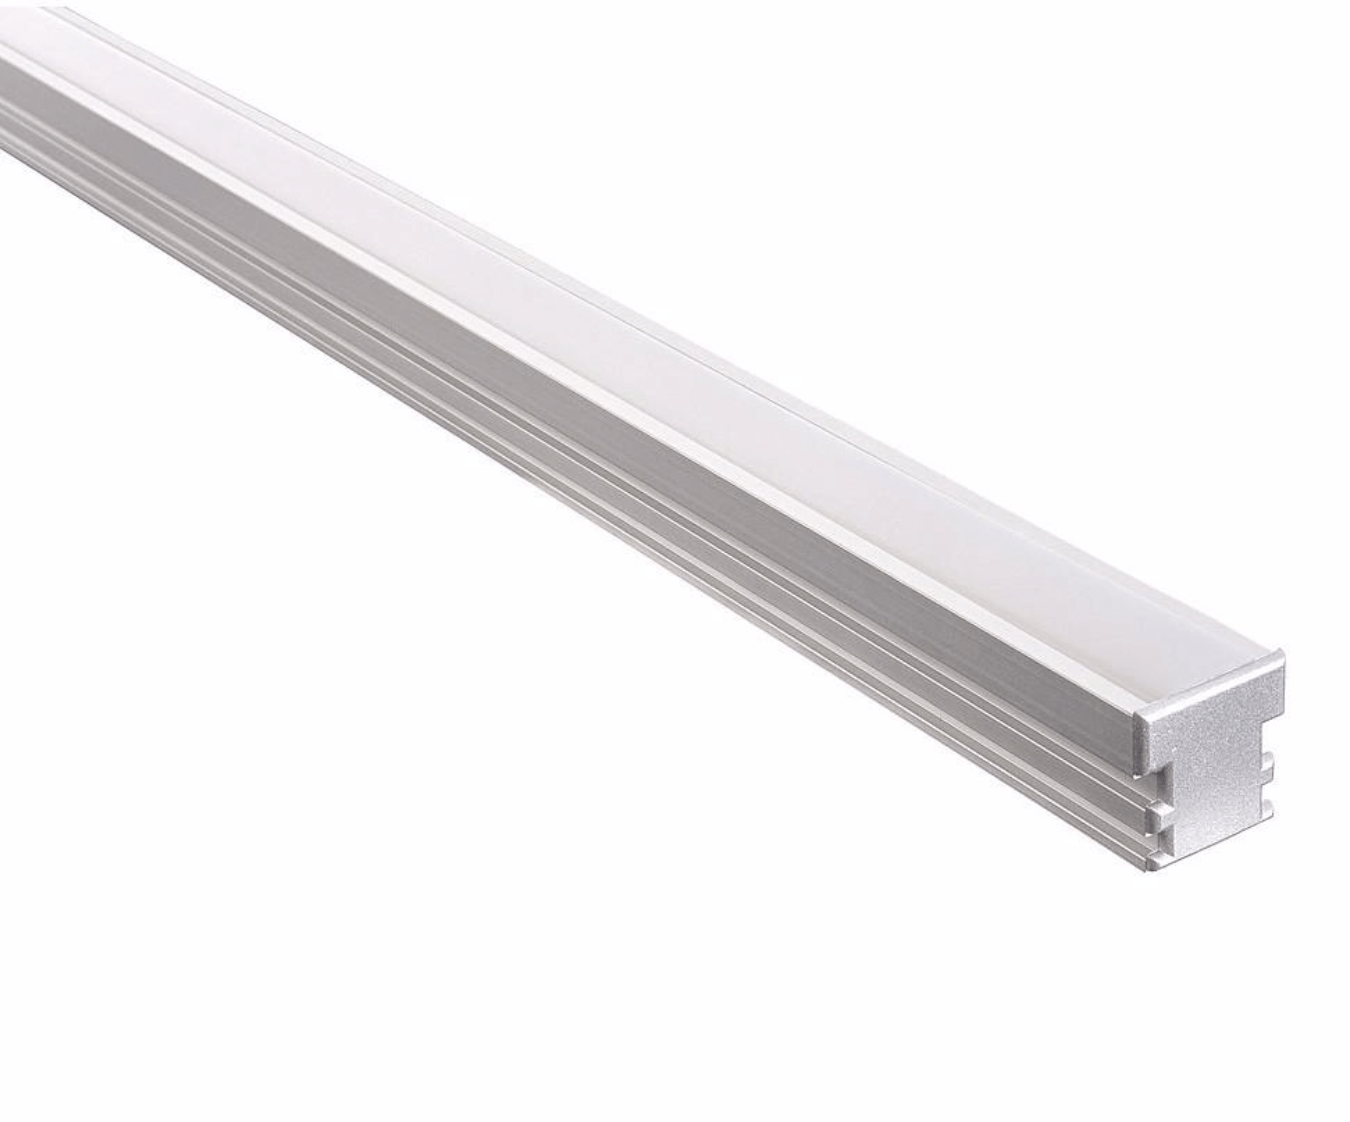 Profiles Recessed Profile - Foot Trafficable Deep - HV9698-2626lighting shops lighting stores LED lights  lighting designer